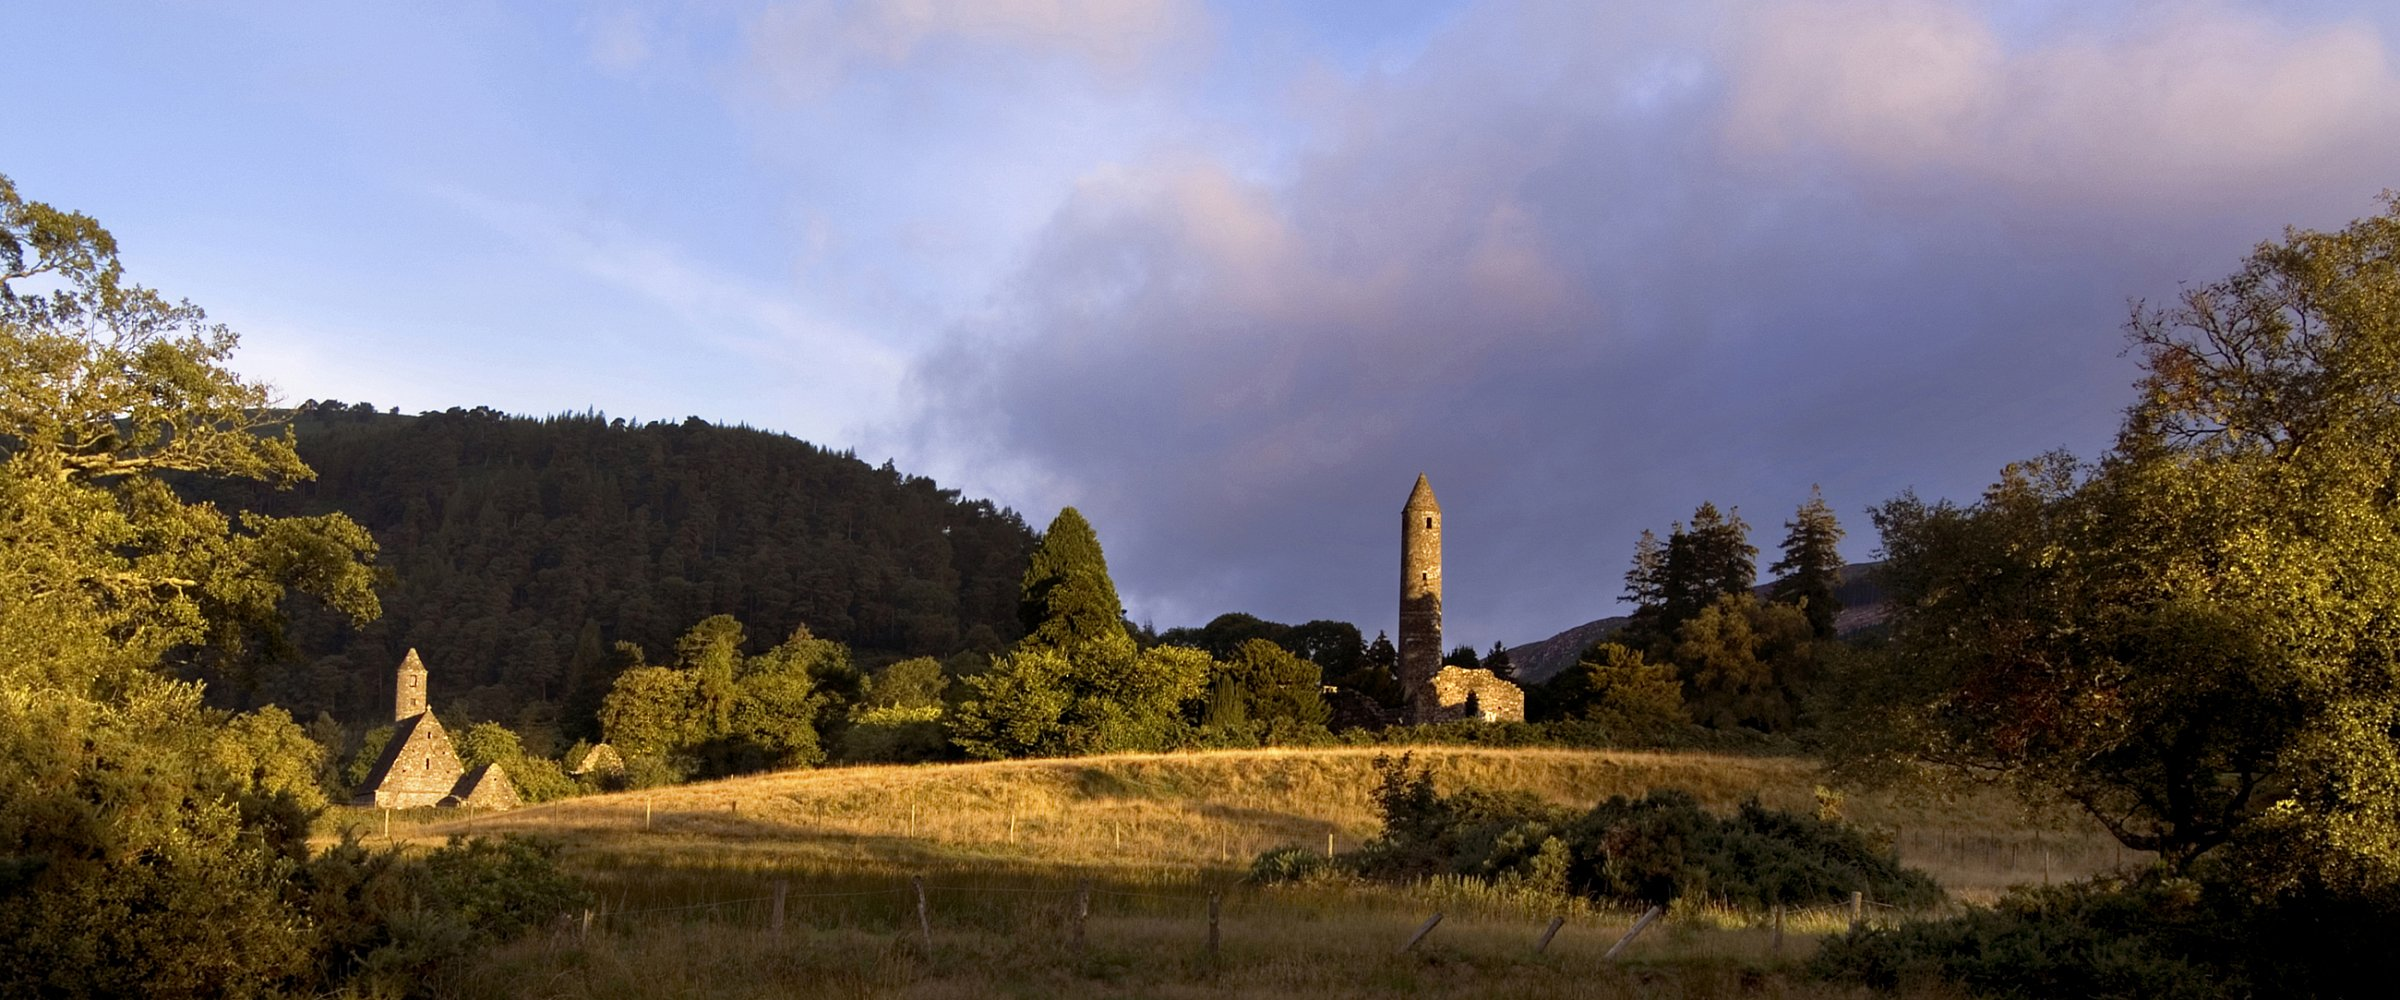 Glendalough, Wicklow. Ireland's Ancient East